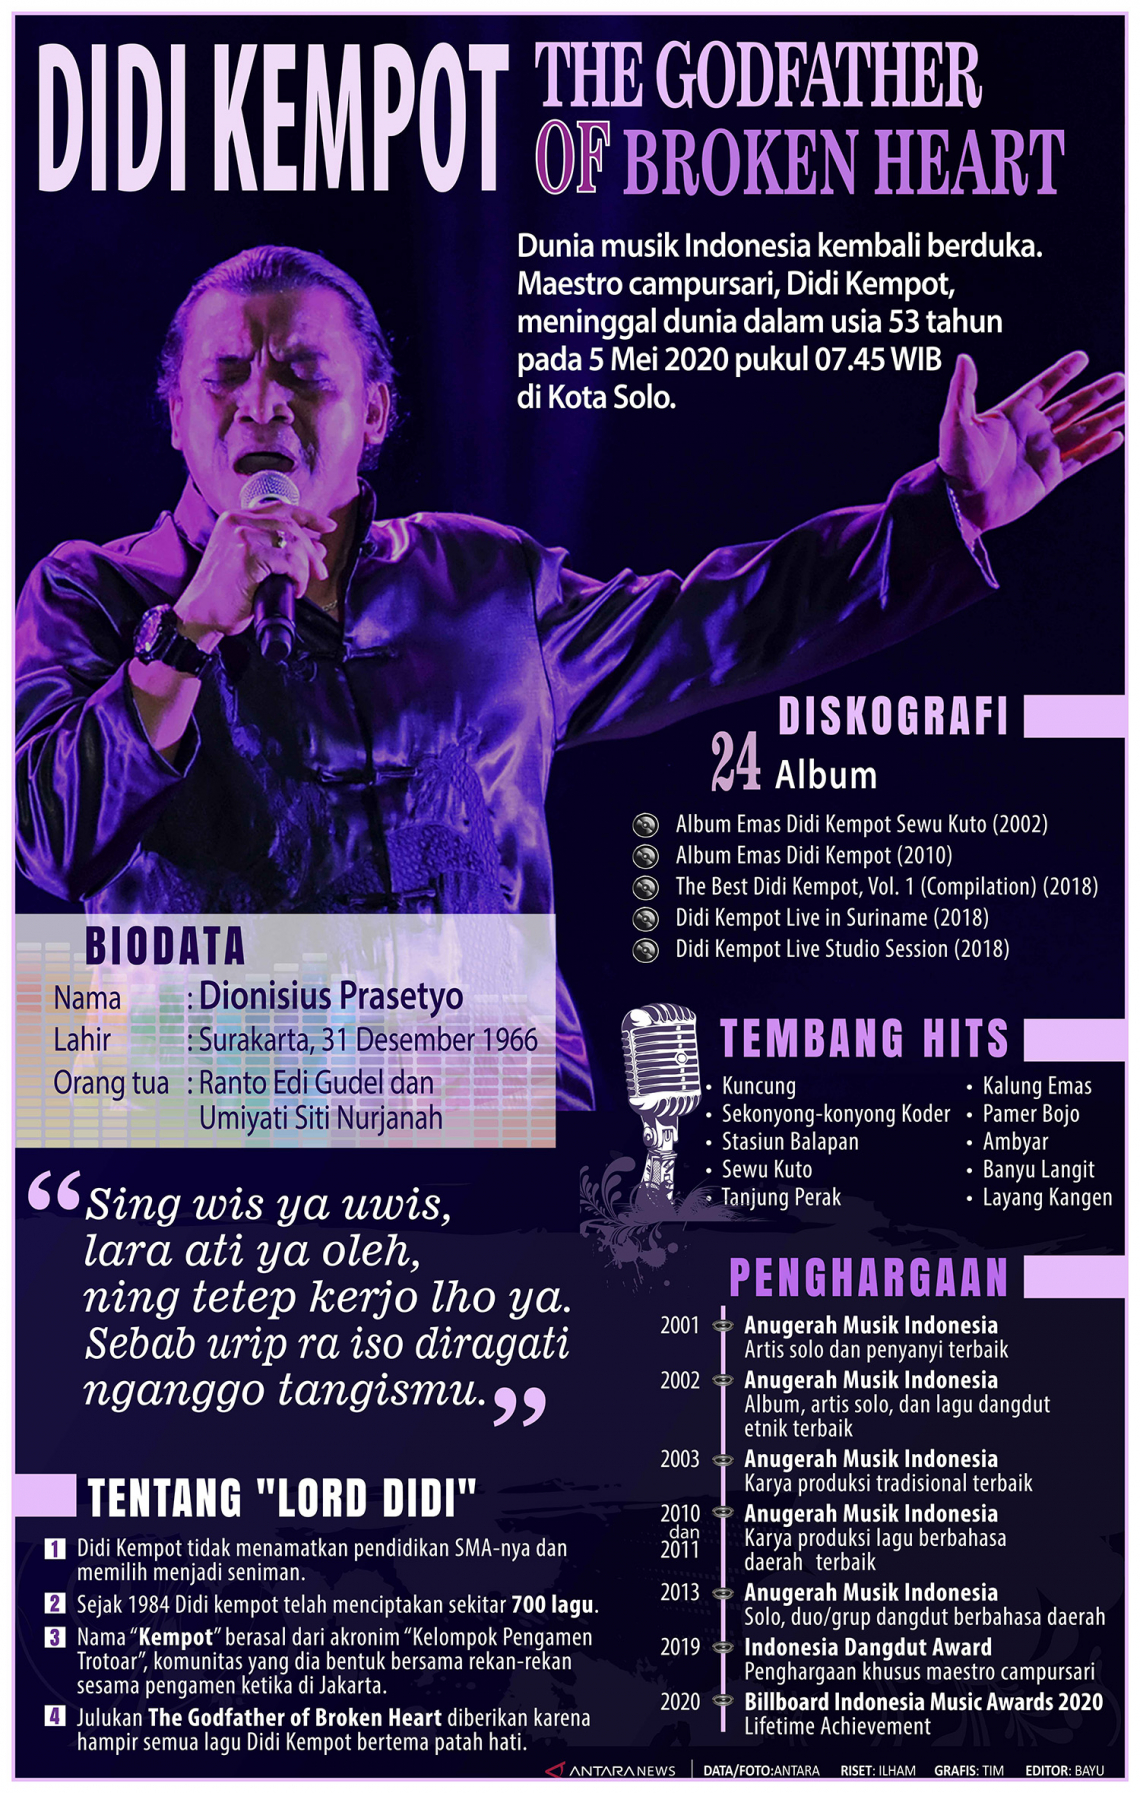 Infografik Didi Kempot The Godfather Of Broken Heart Antara